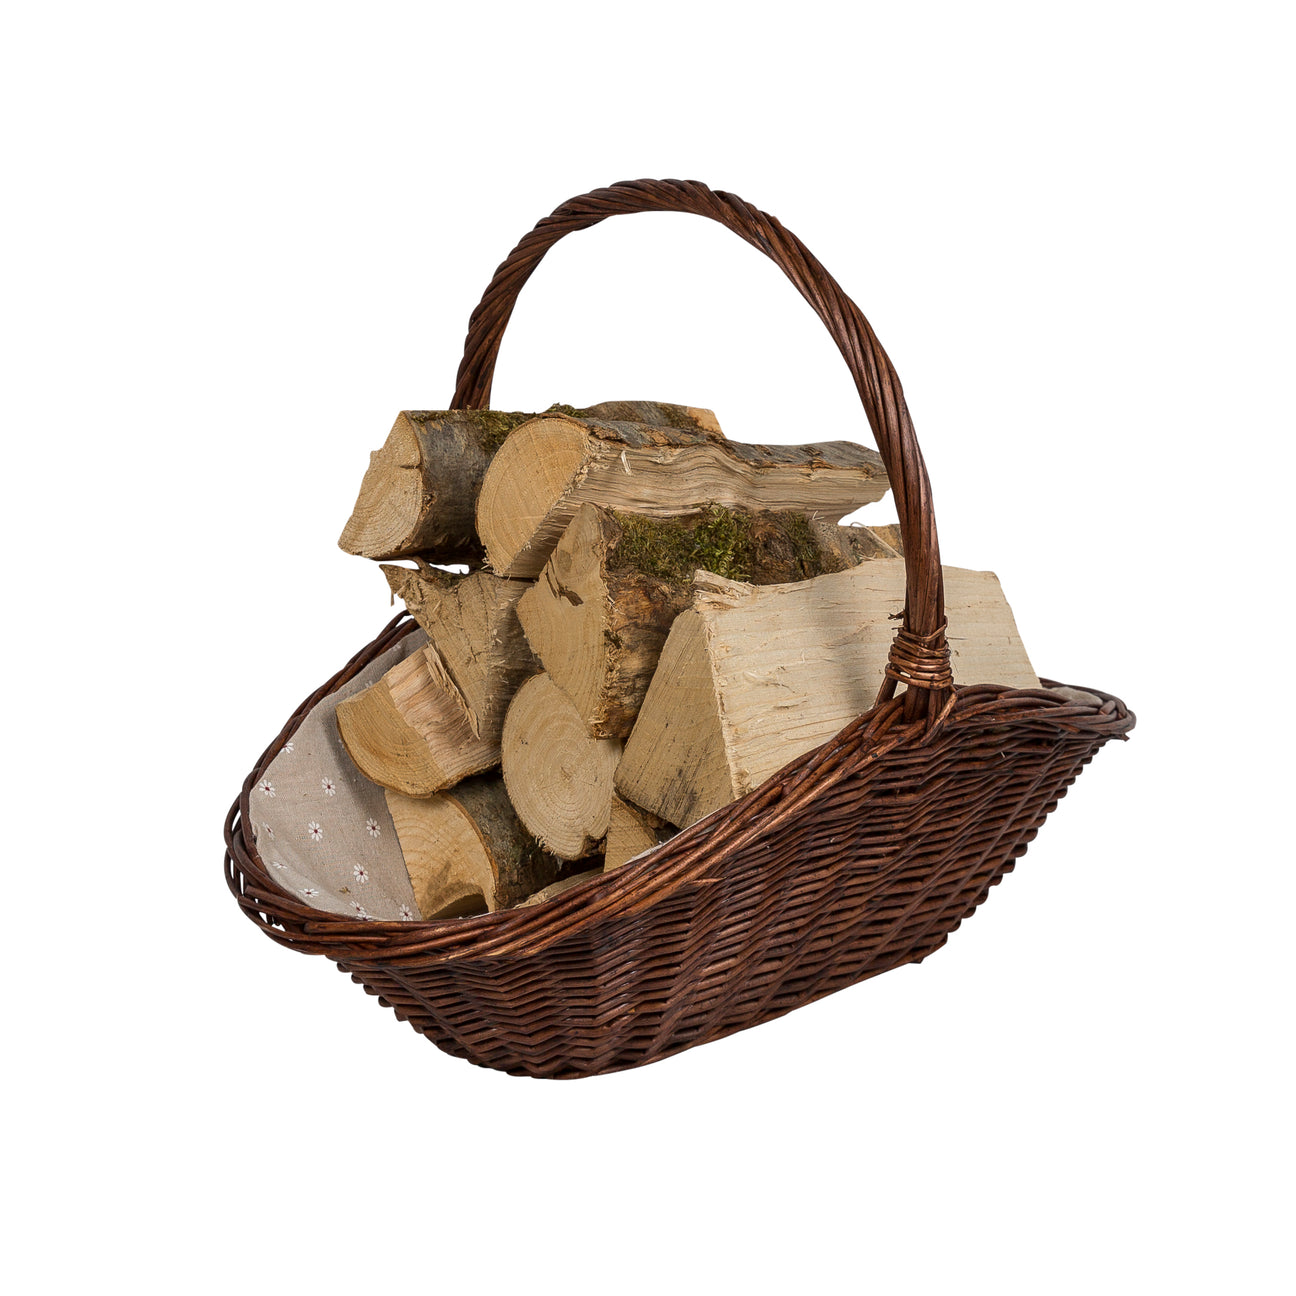 Image of Wicker basket holding firewood